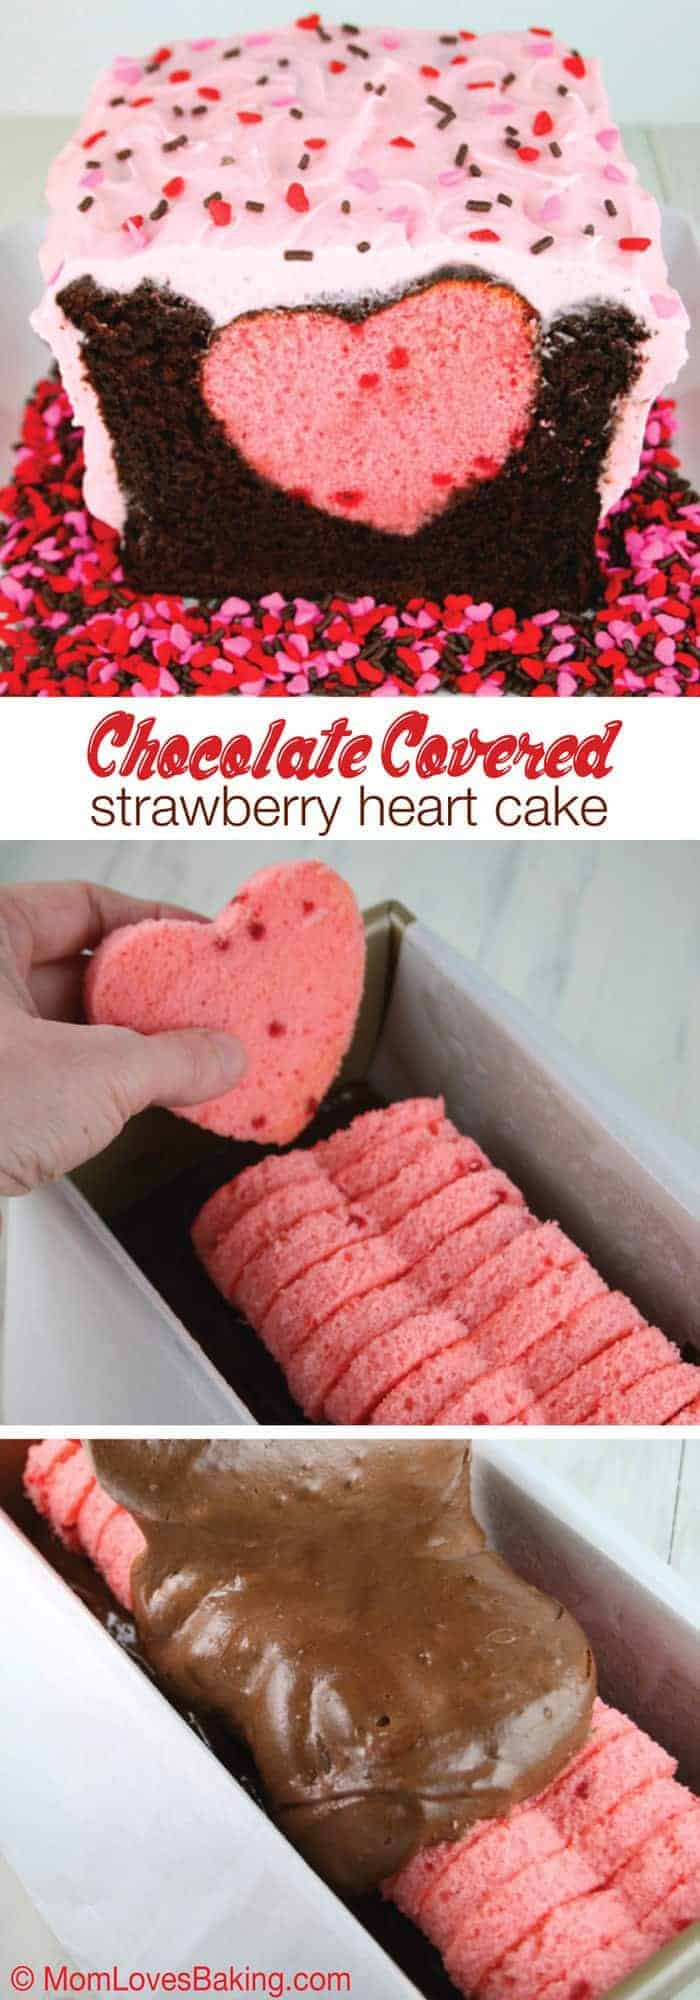 Chocolate Covered Strawberry Heart Cake - Mom Loves Baking